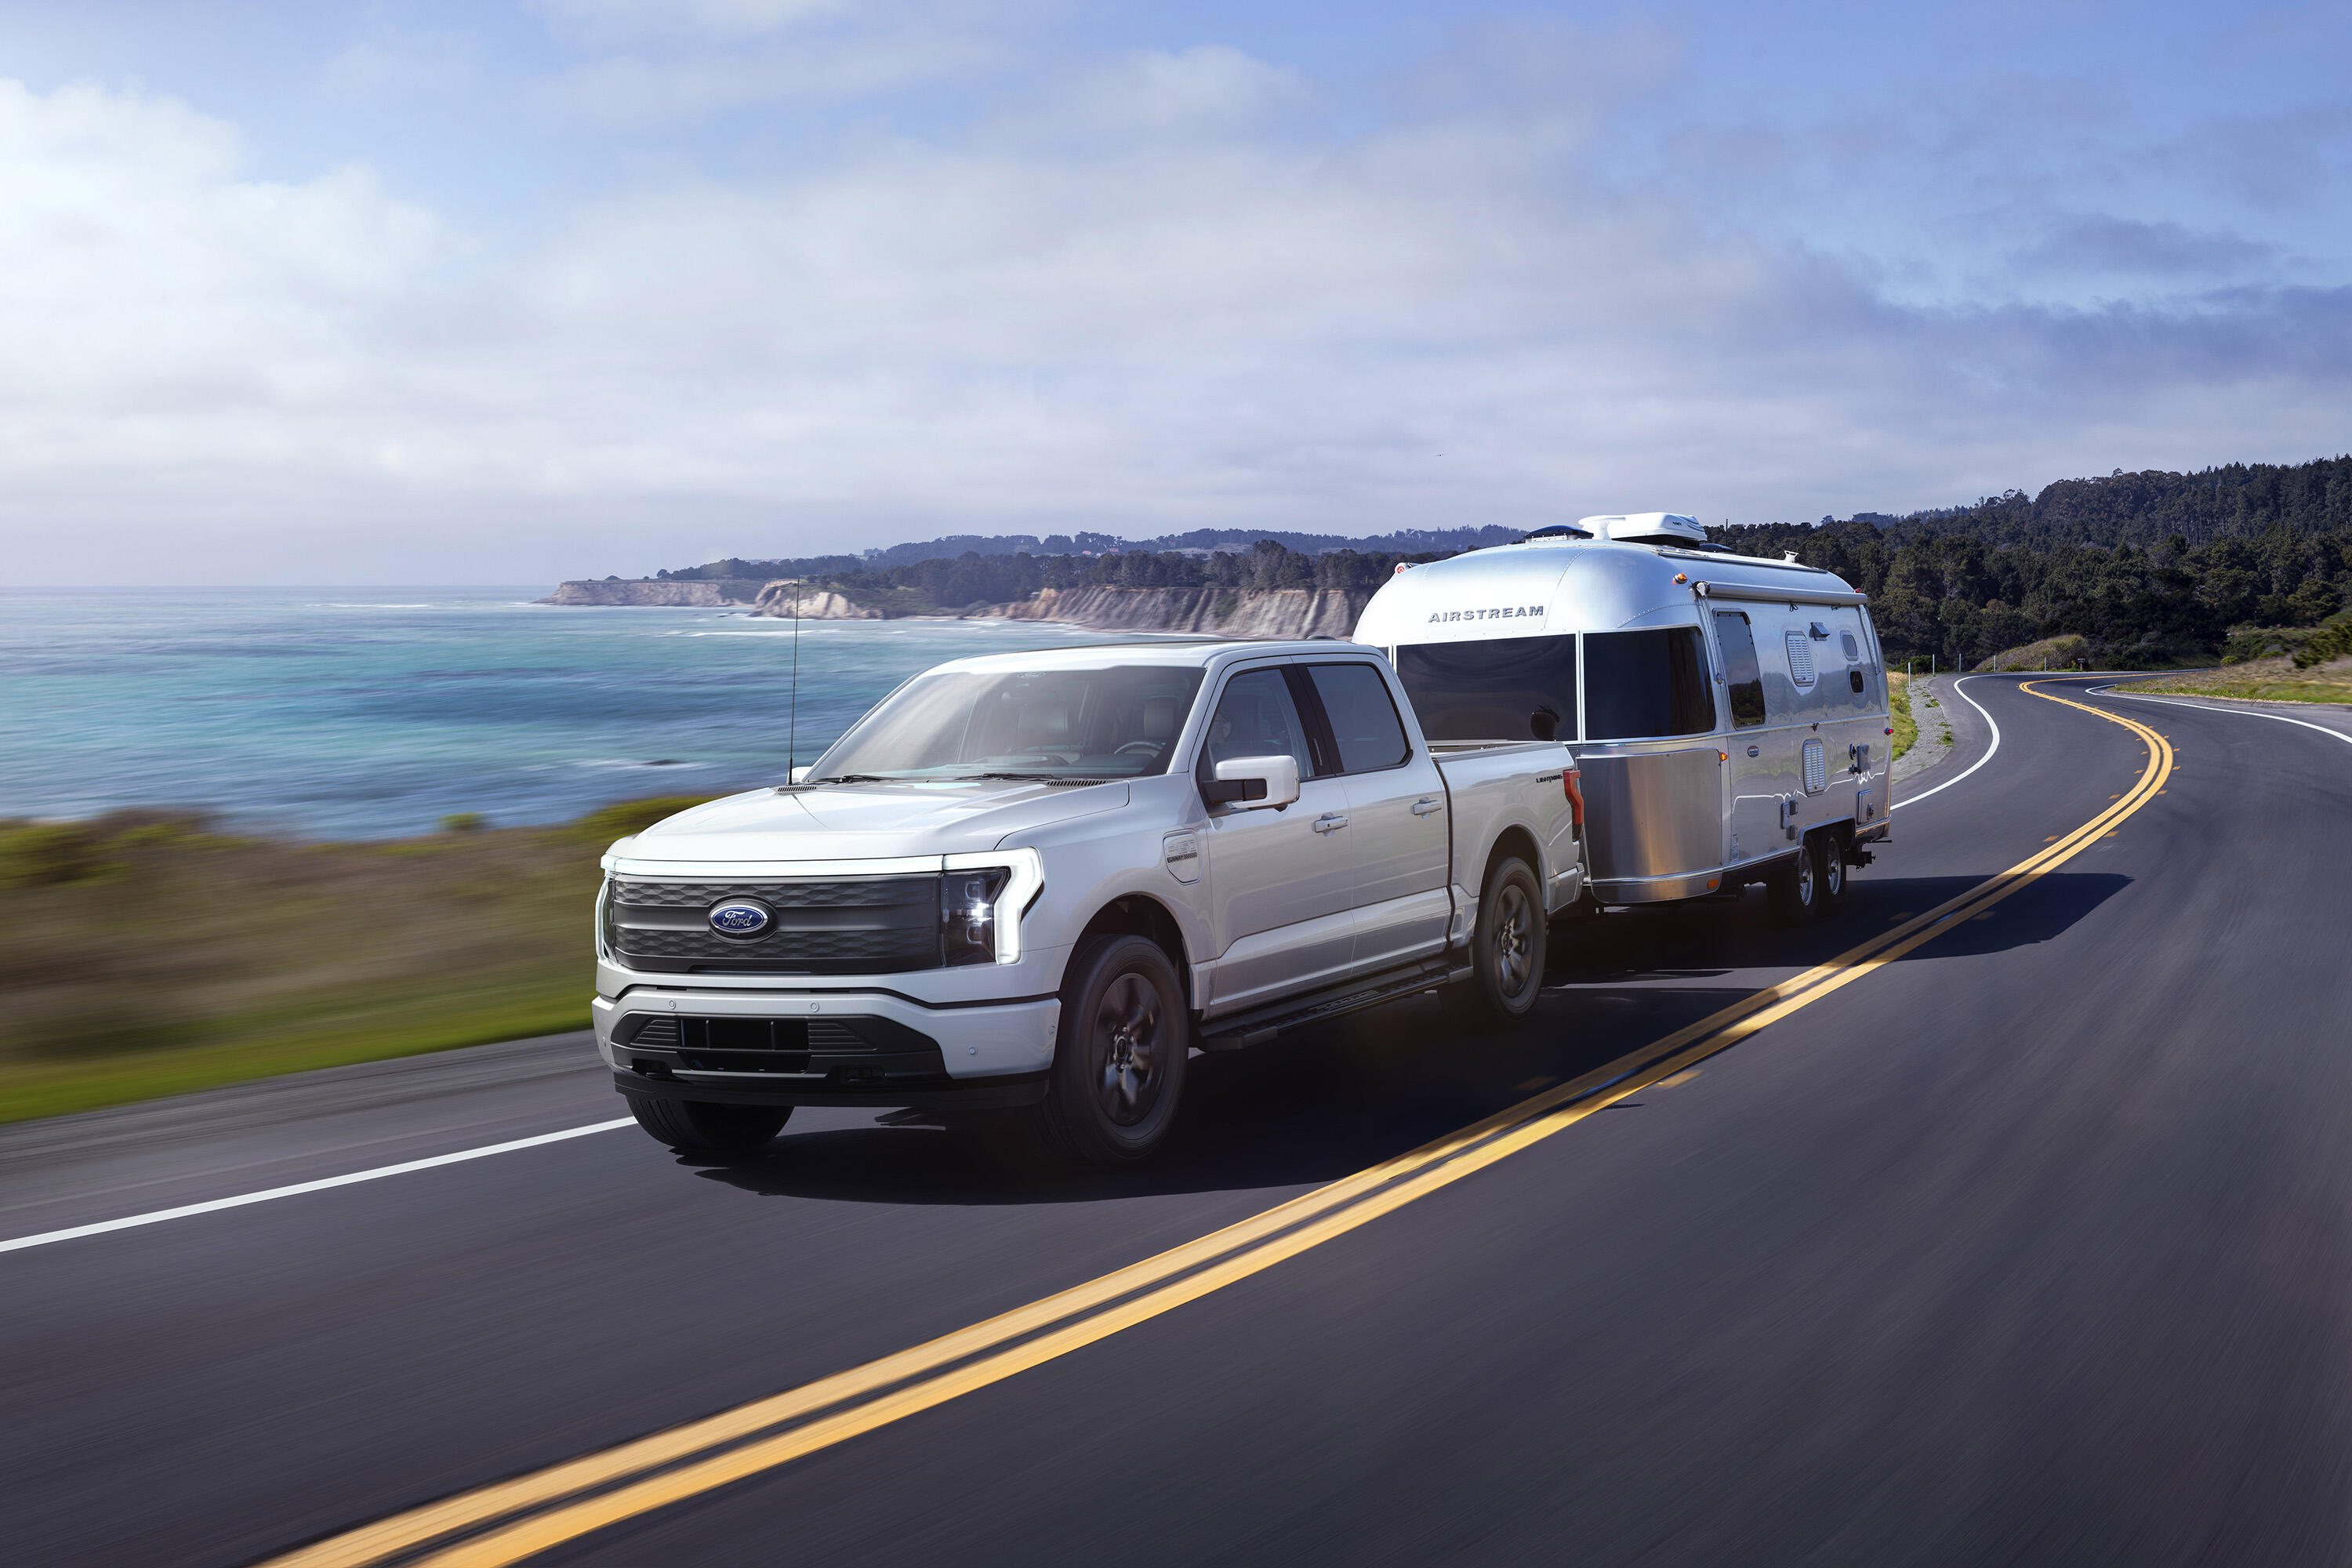 2022 Ford F-150 Lightning - towing